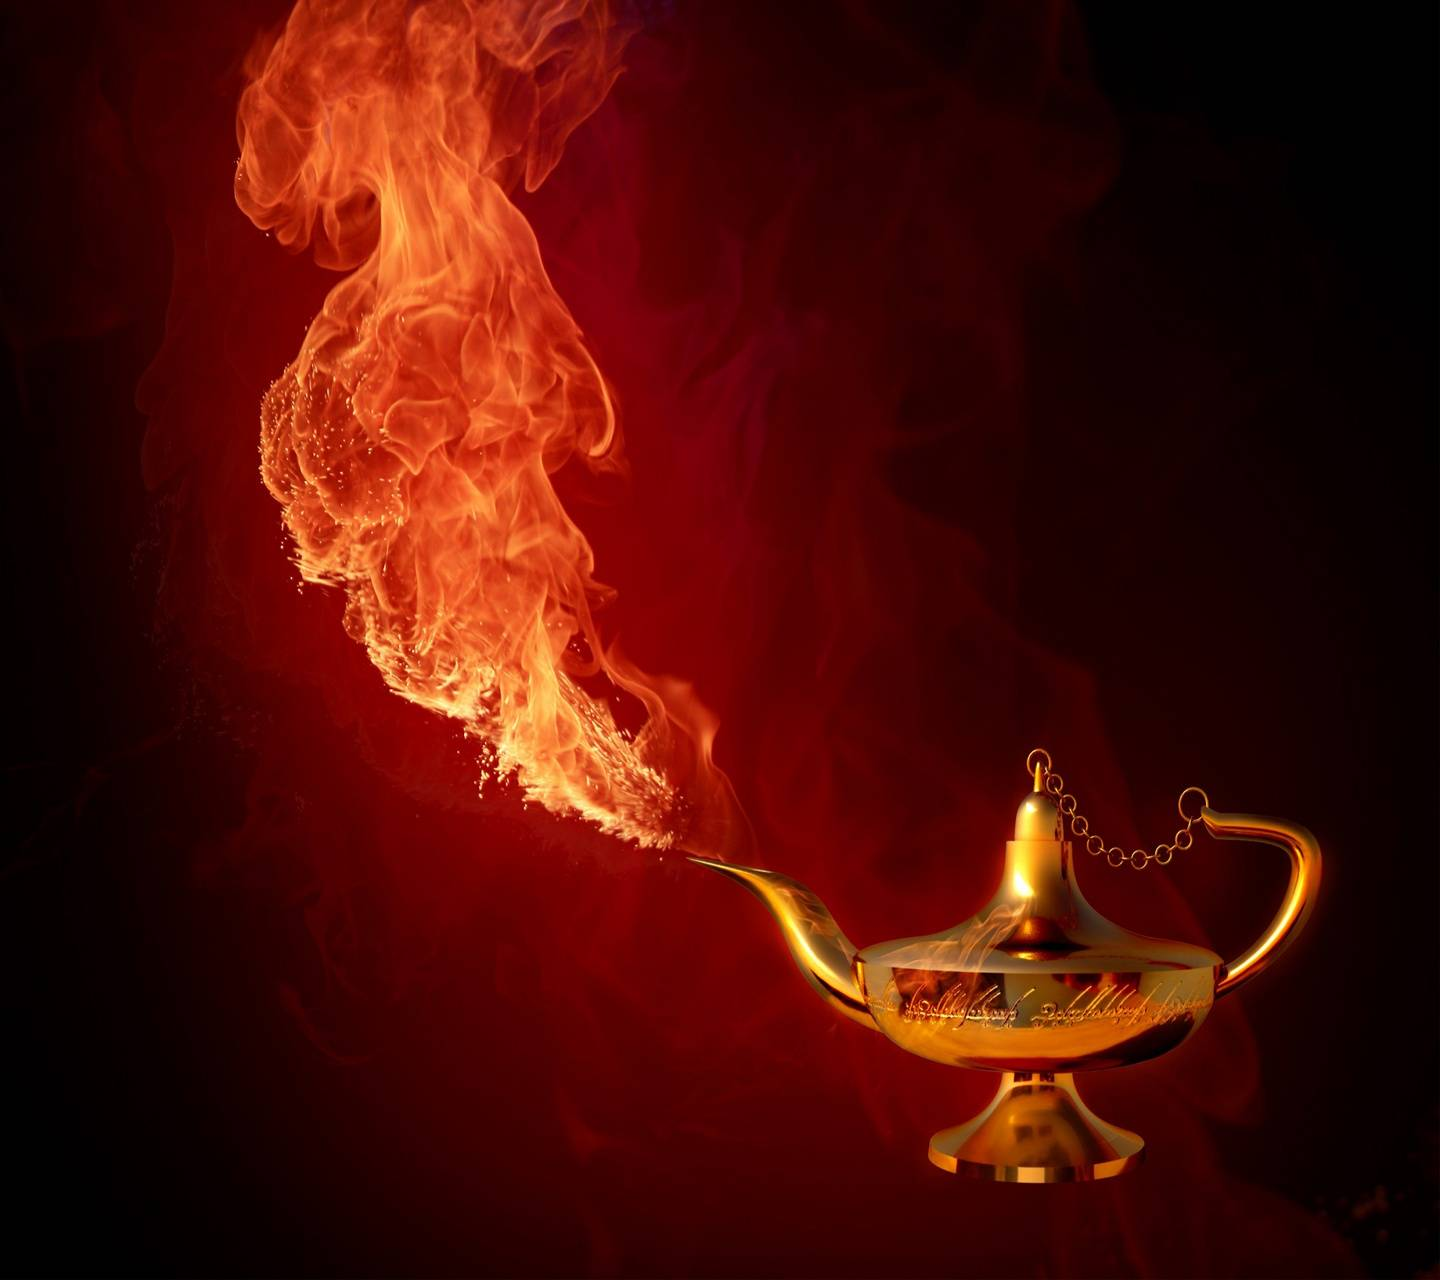 Genie From Fire